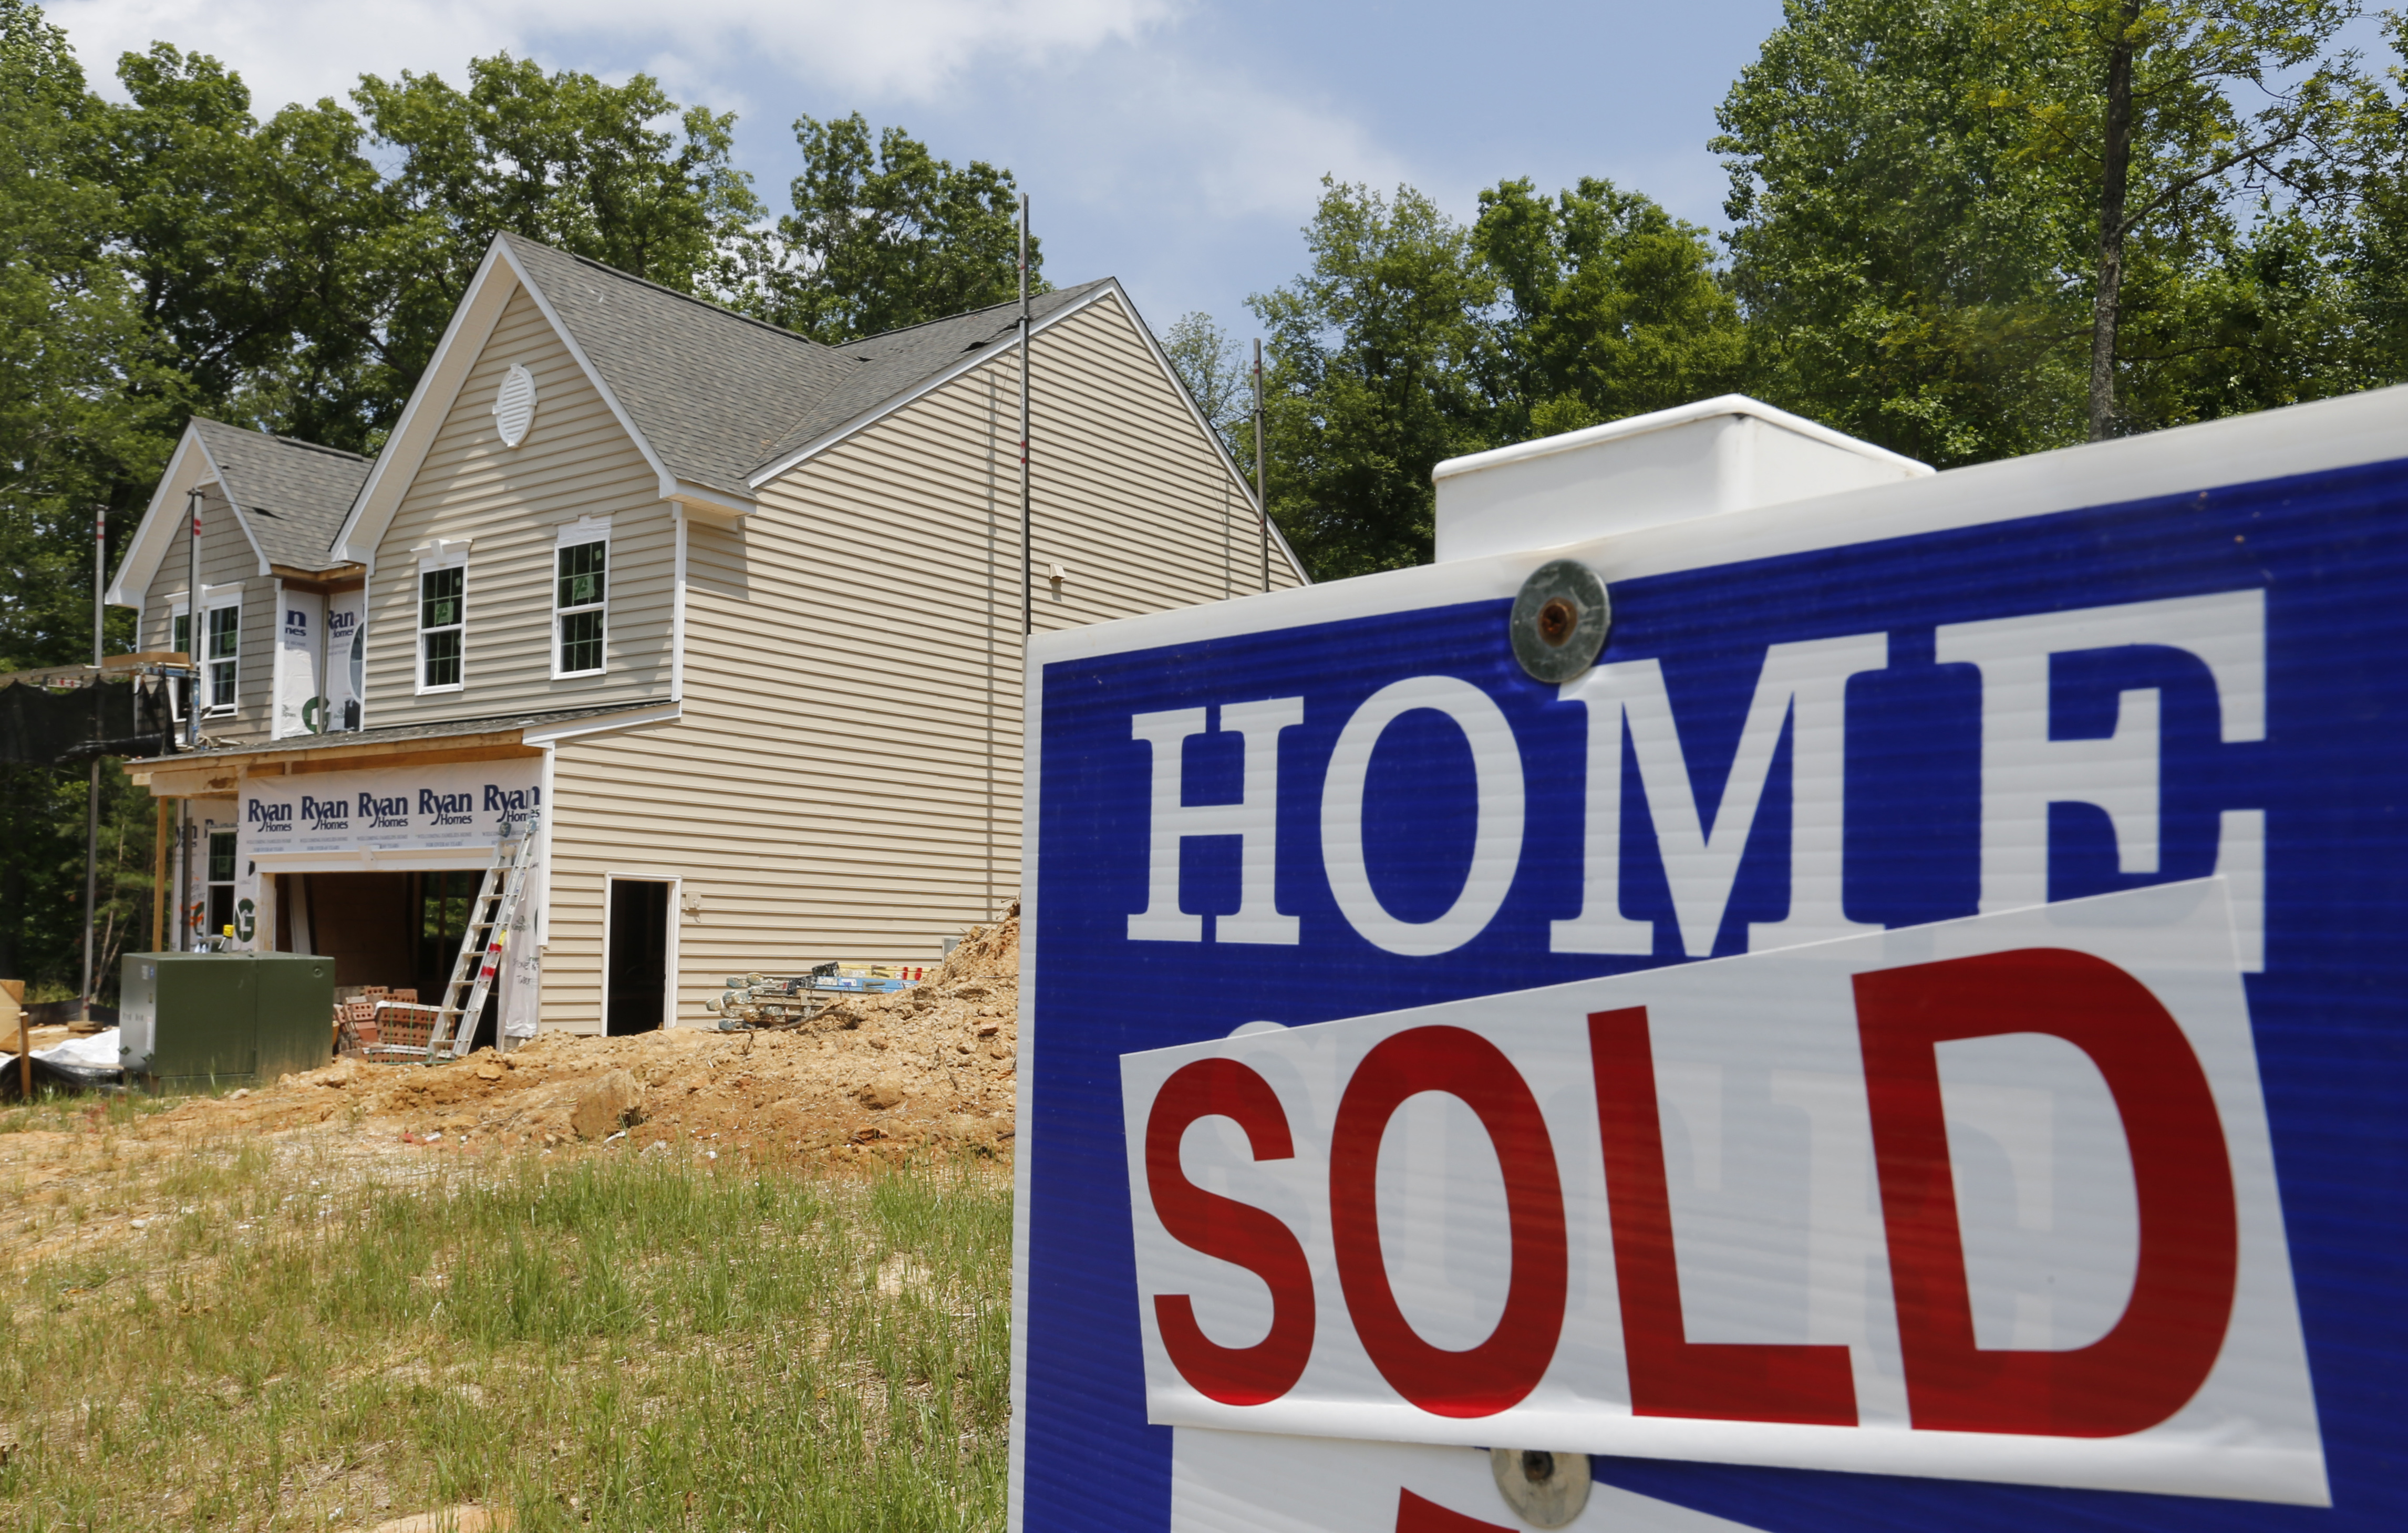 New report signals boon for house flippers in D.C. area